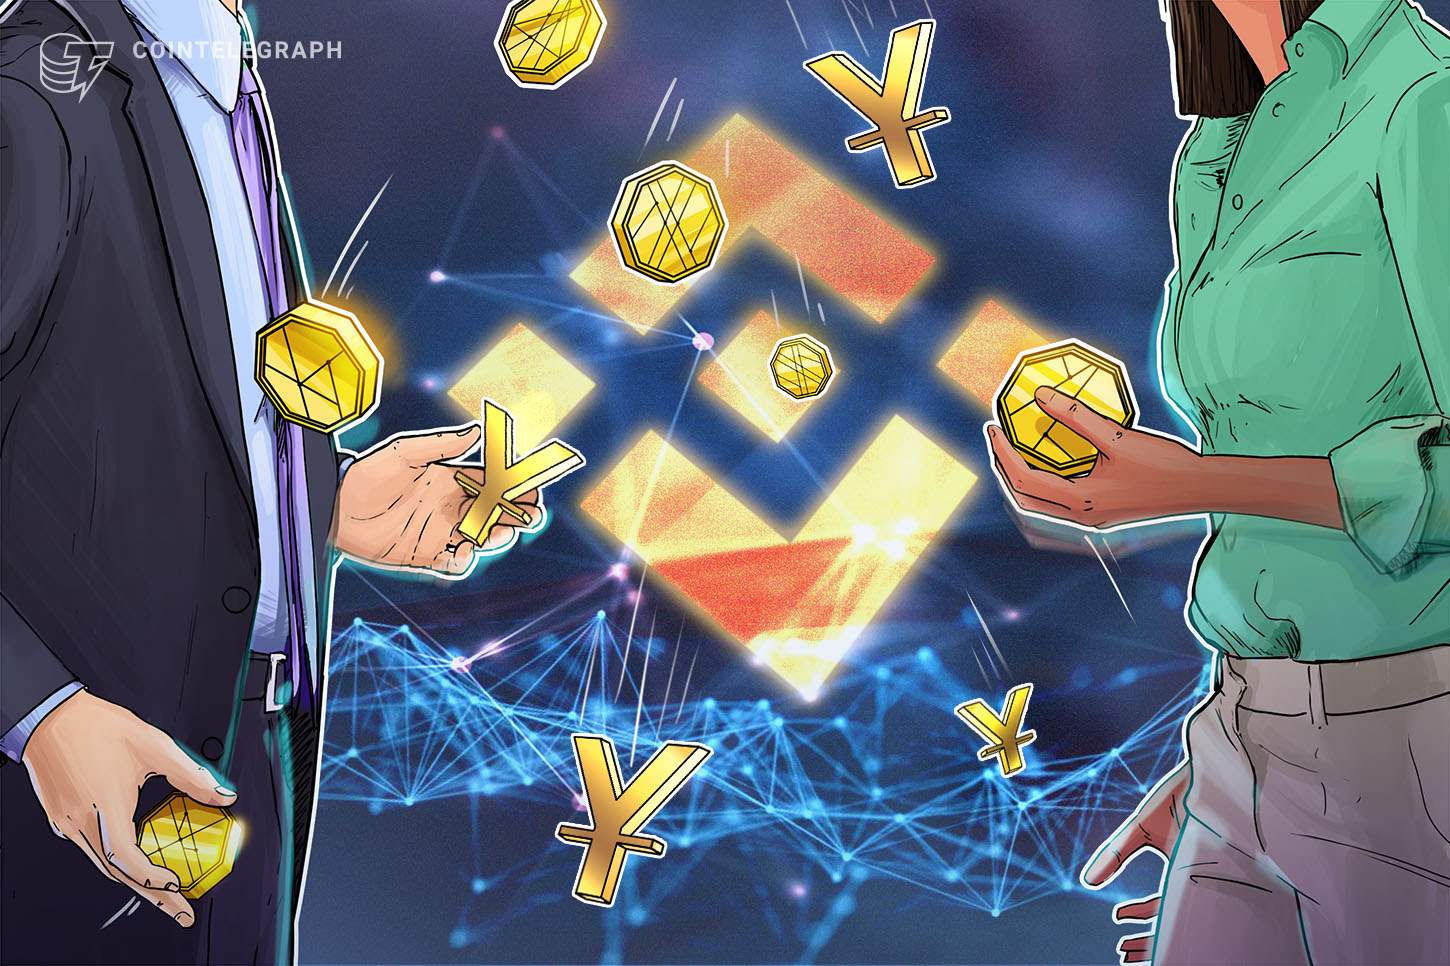 Binance blocks fiat deposits and spot crypto trading for Singapore users